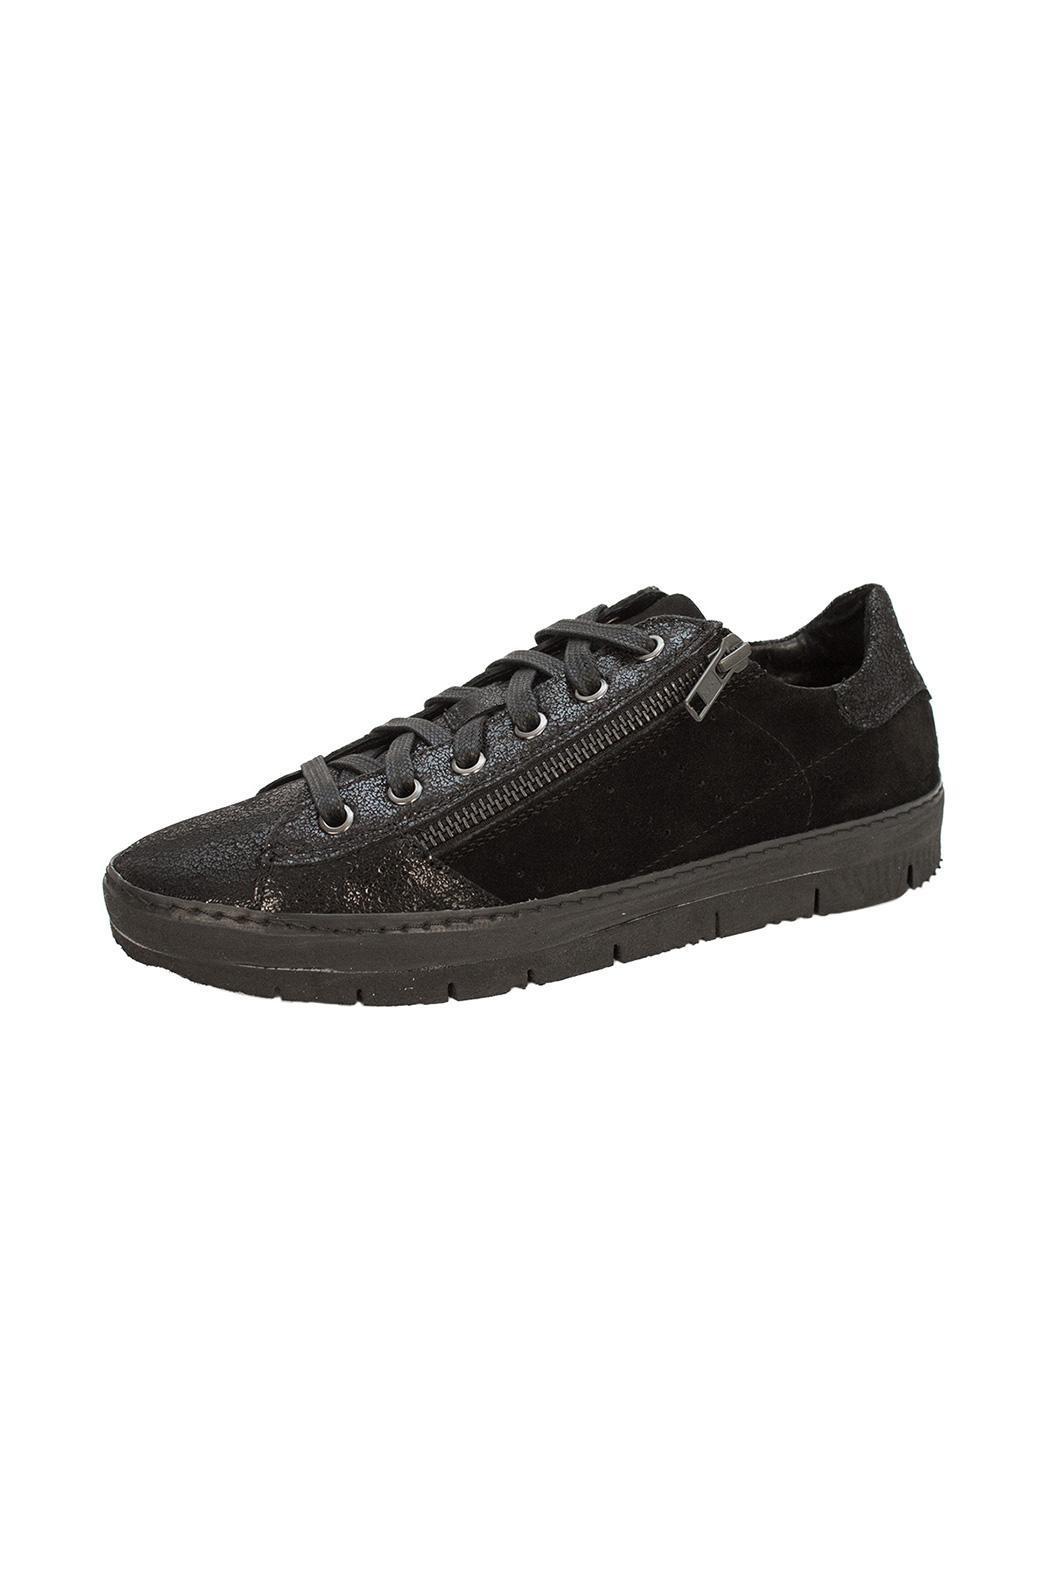 Khrio Black Double Zip Sneaker - Front Cropped Image